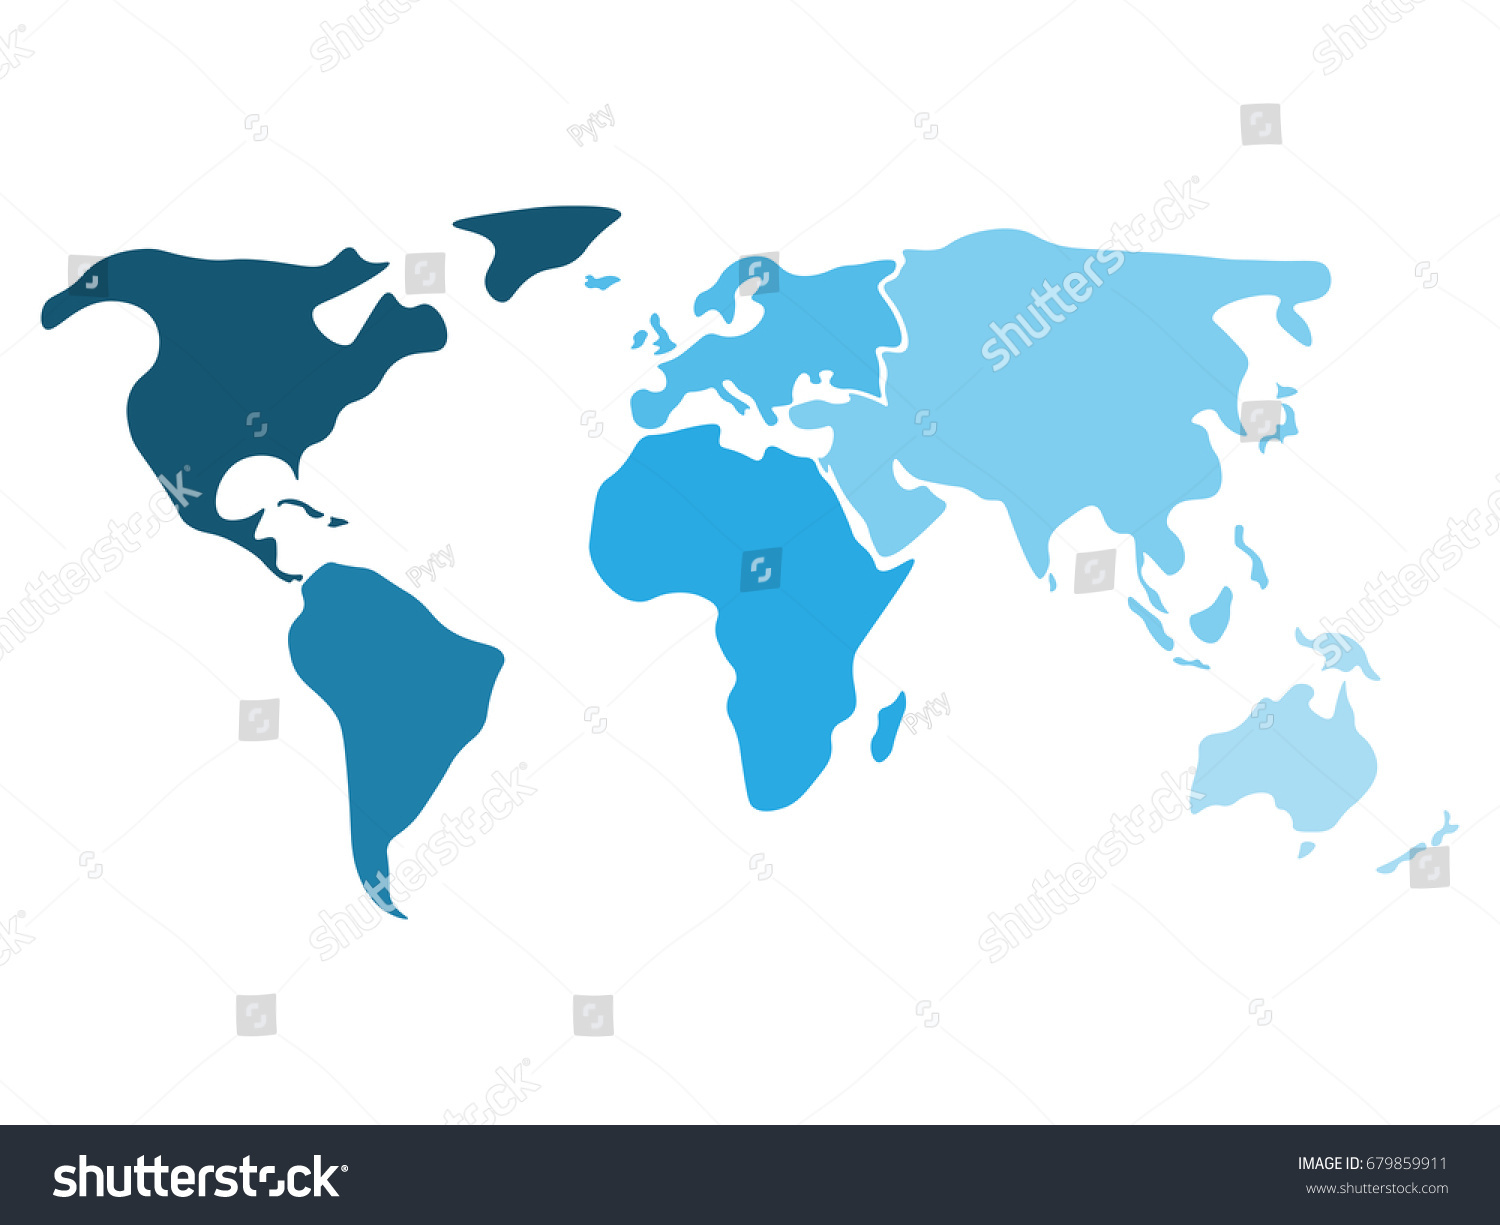 Multicolored world map divided six continents vectores en stock multicolored world map divided to six continents in different shaders of blue north america gumiabroncs Image collections